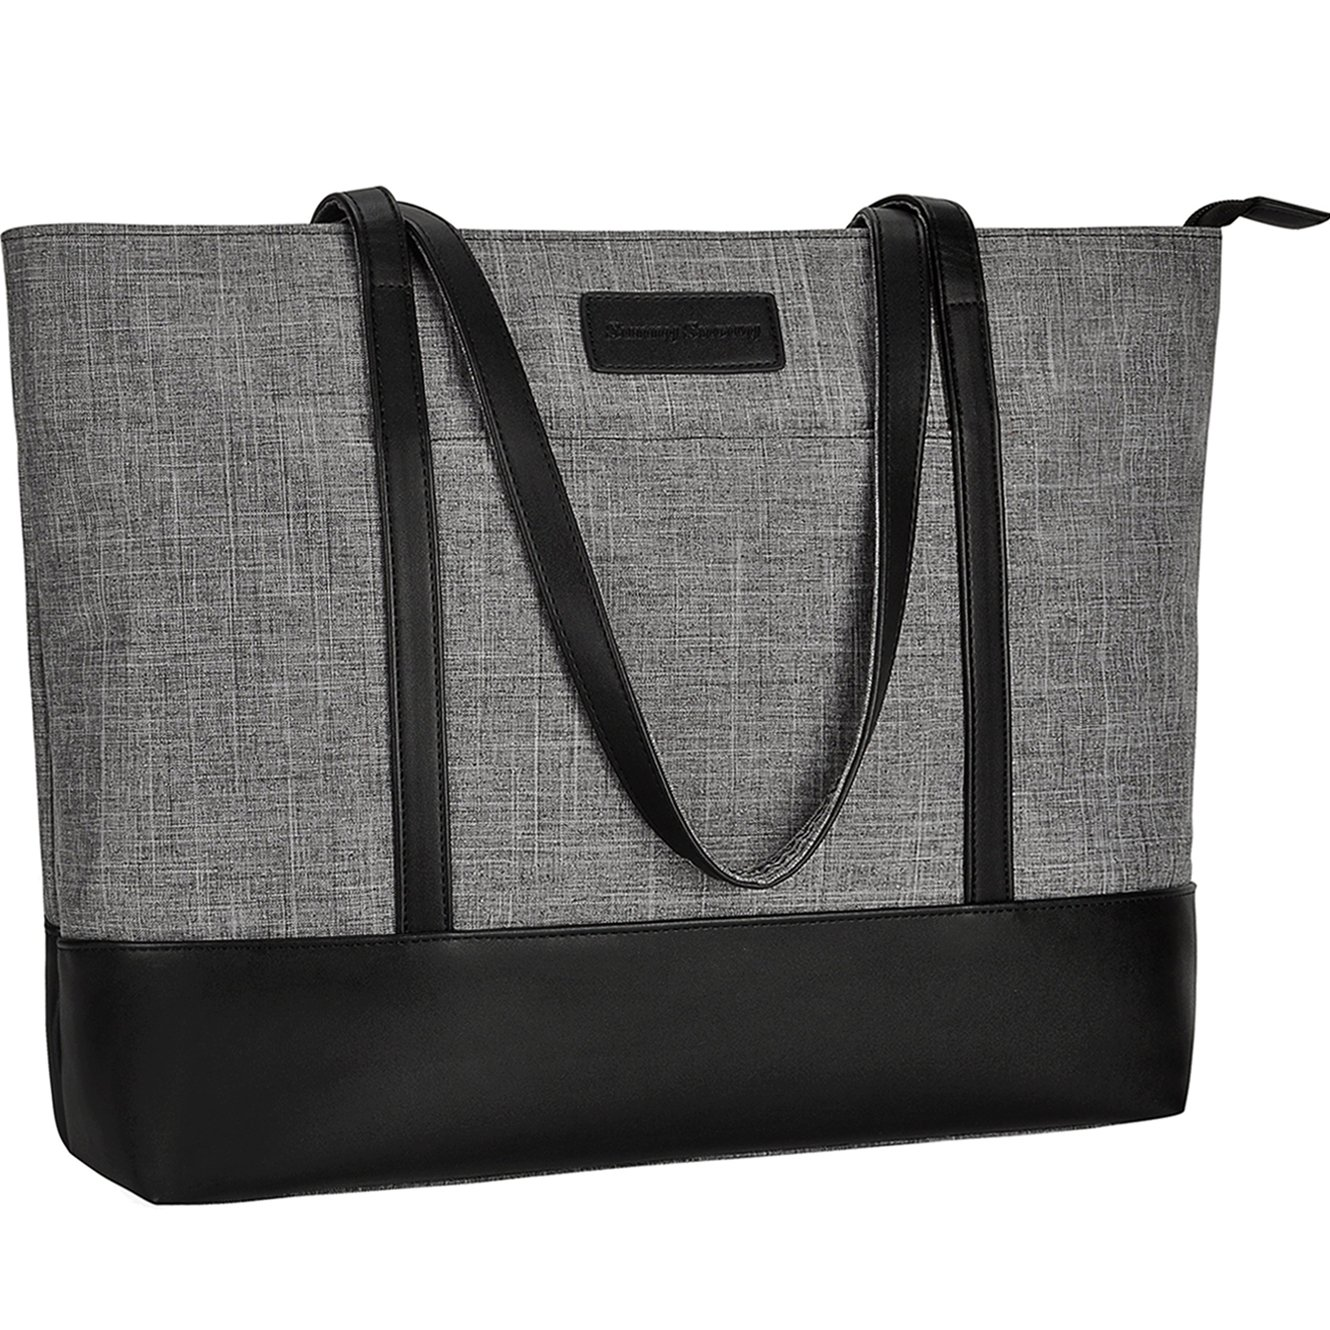 Laptop Tote Bag,Fits 15.6-17 Inch Laptop,Womens Lightweight Water Resistant Nylon Tote Bag Shoulder Bag